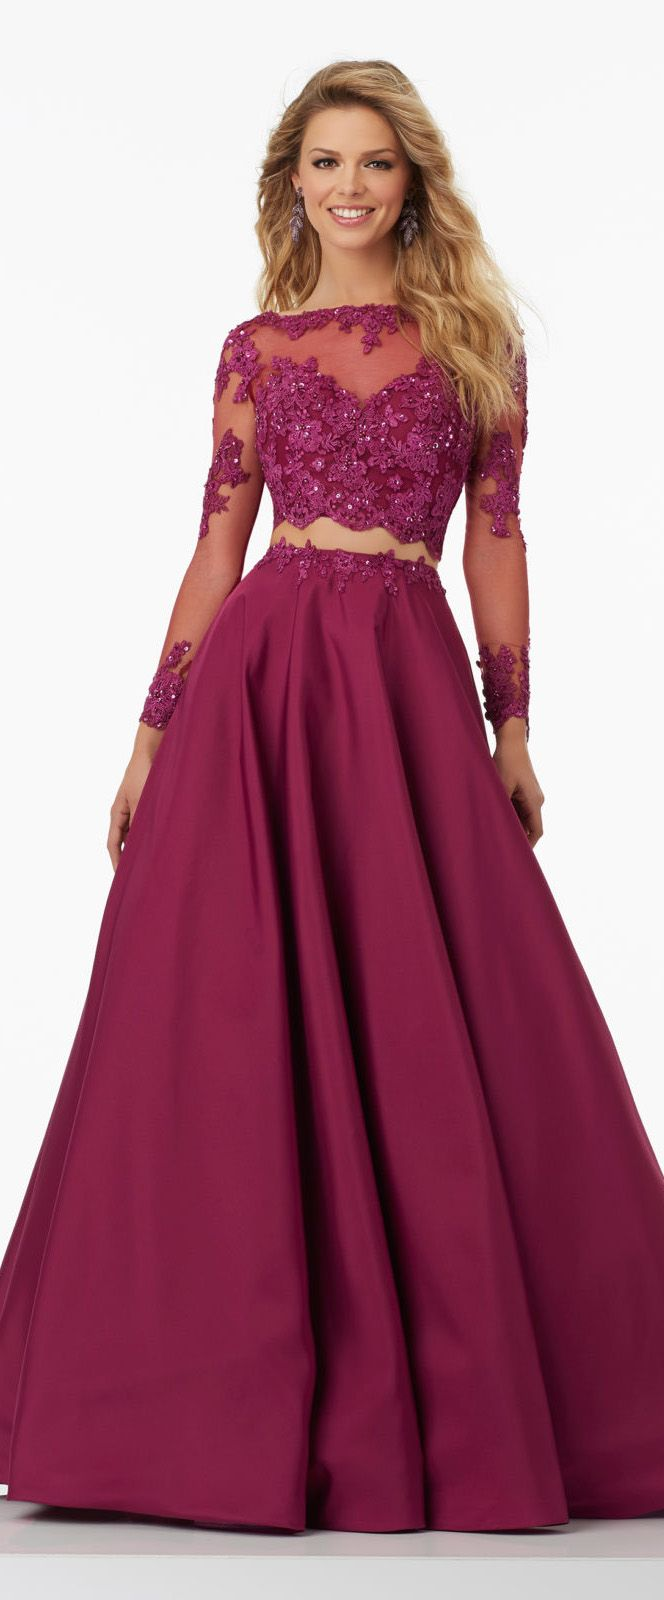 2017 New Fashion Two Piece Long Sleeves Prom Dress Lace Satin Formal Gown Promdress Promgown Prom Prom2017 Gown Vestidos Saia Longa Para Festa 15 Vestidos [ 1600 x 664 Pixel ]